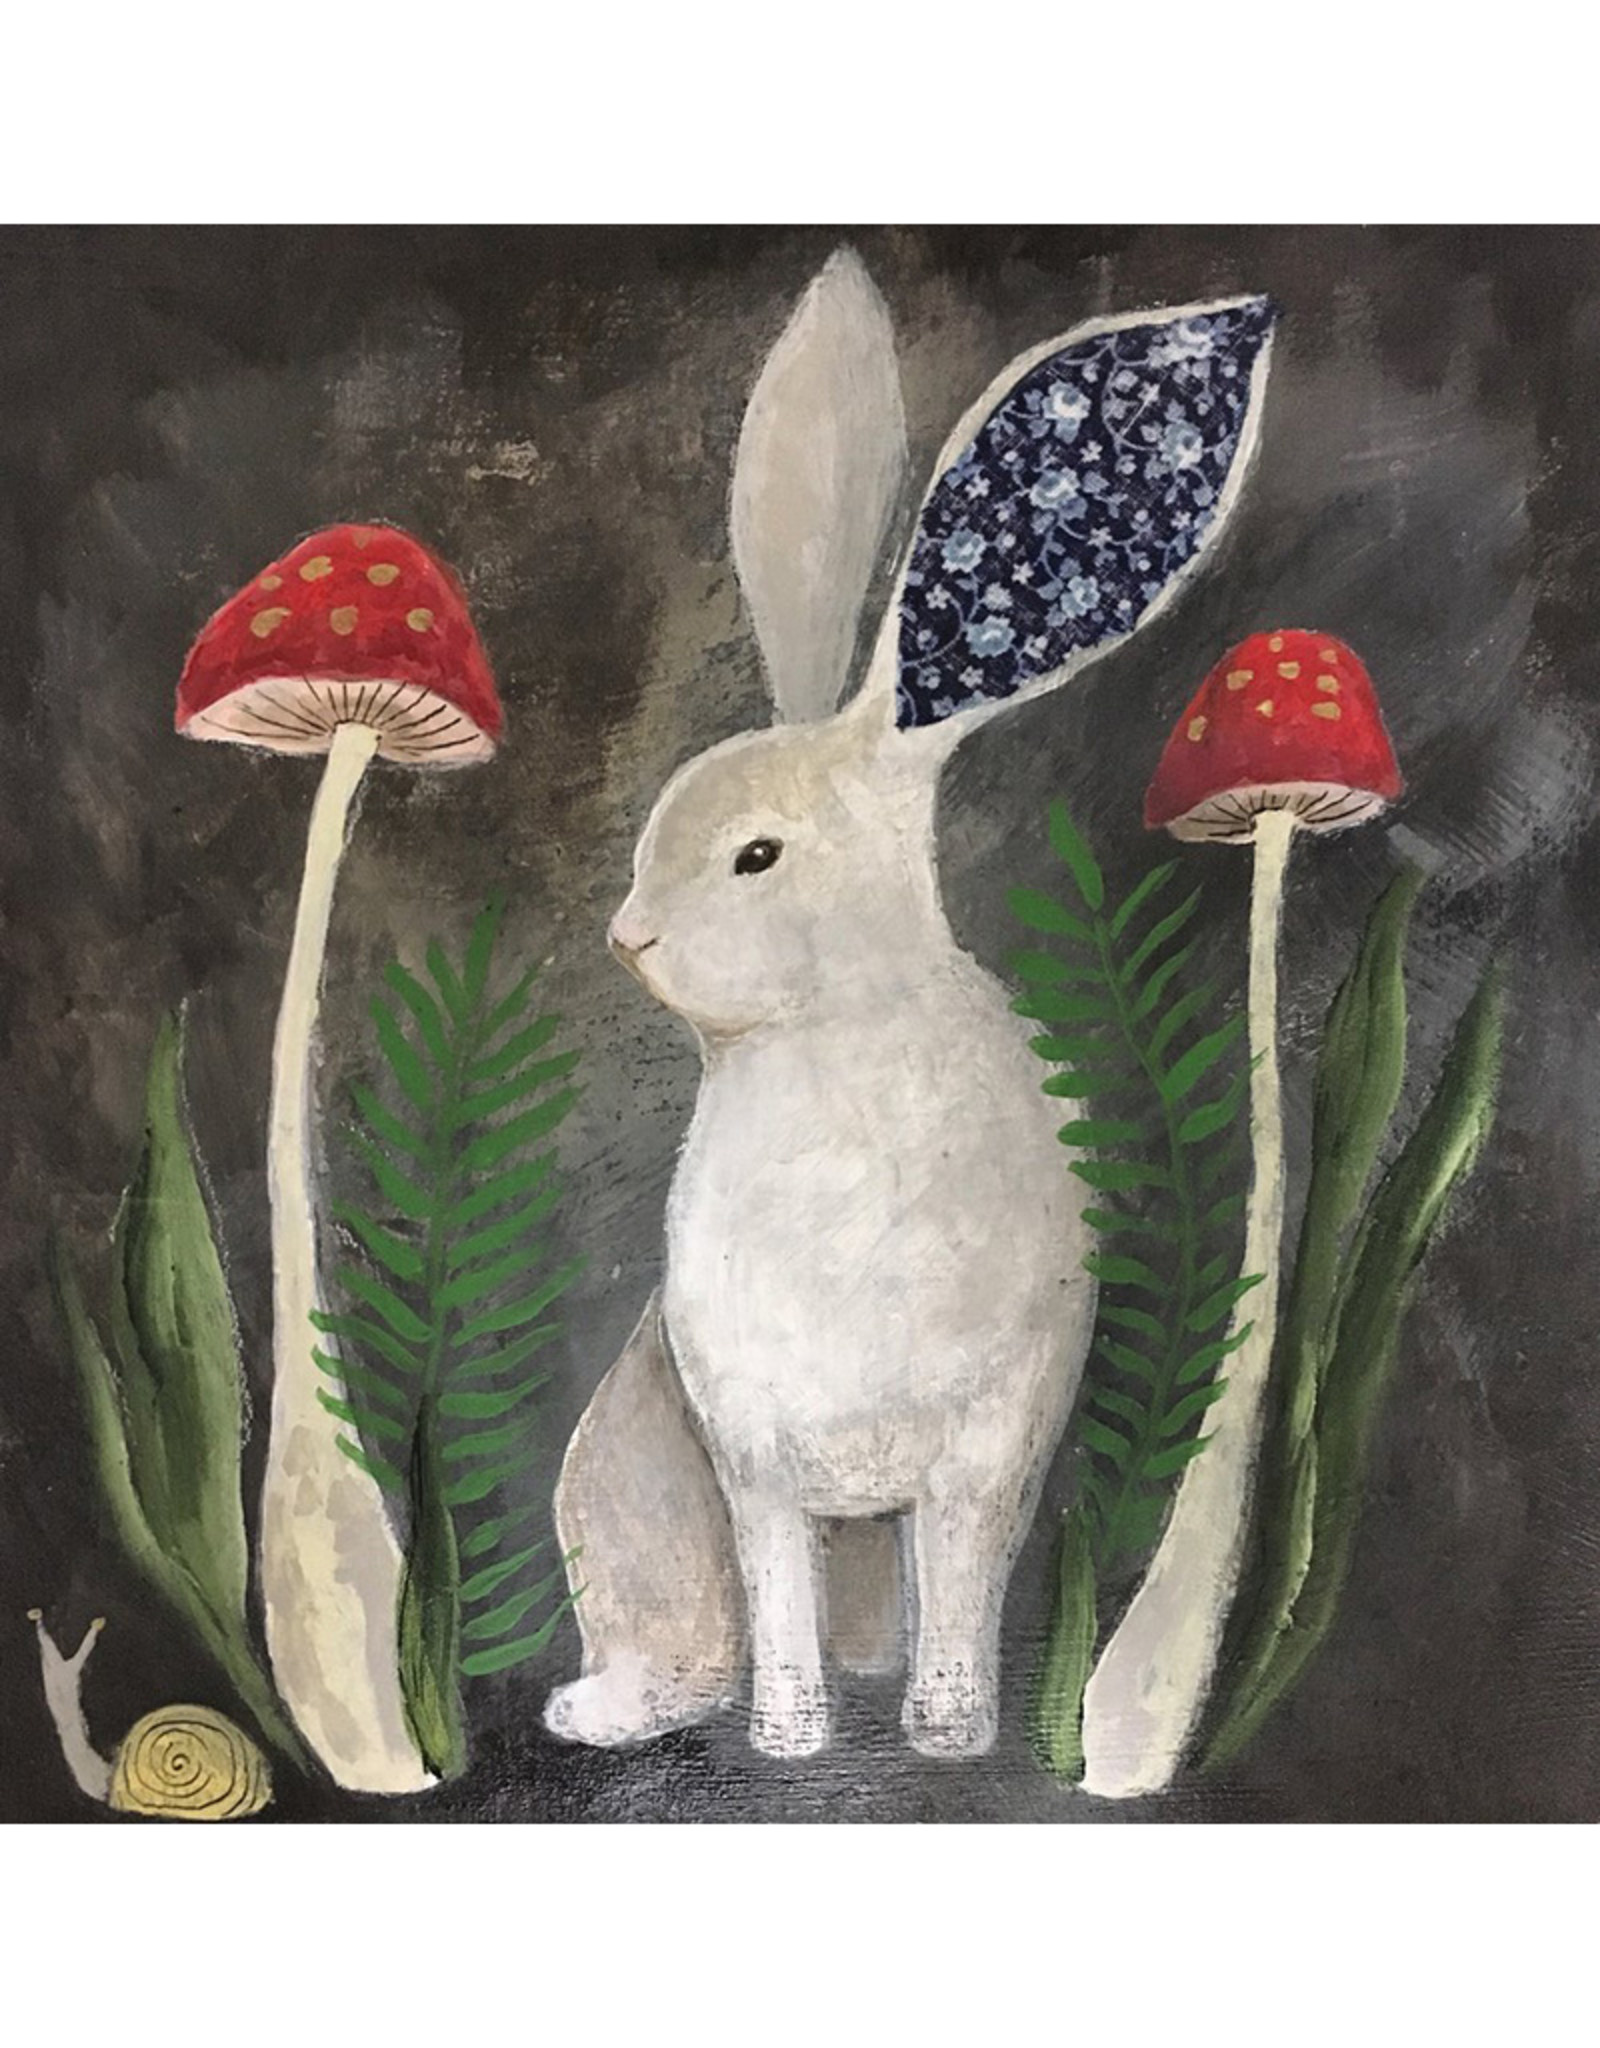 Erin Weiss Le Lapin 8x8 Gallery Print